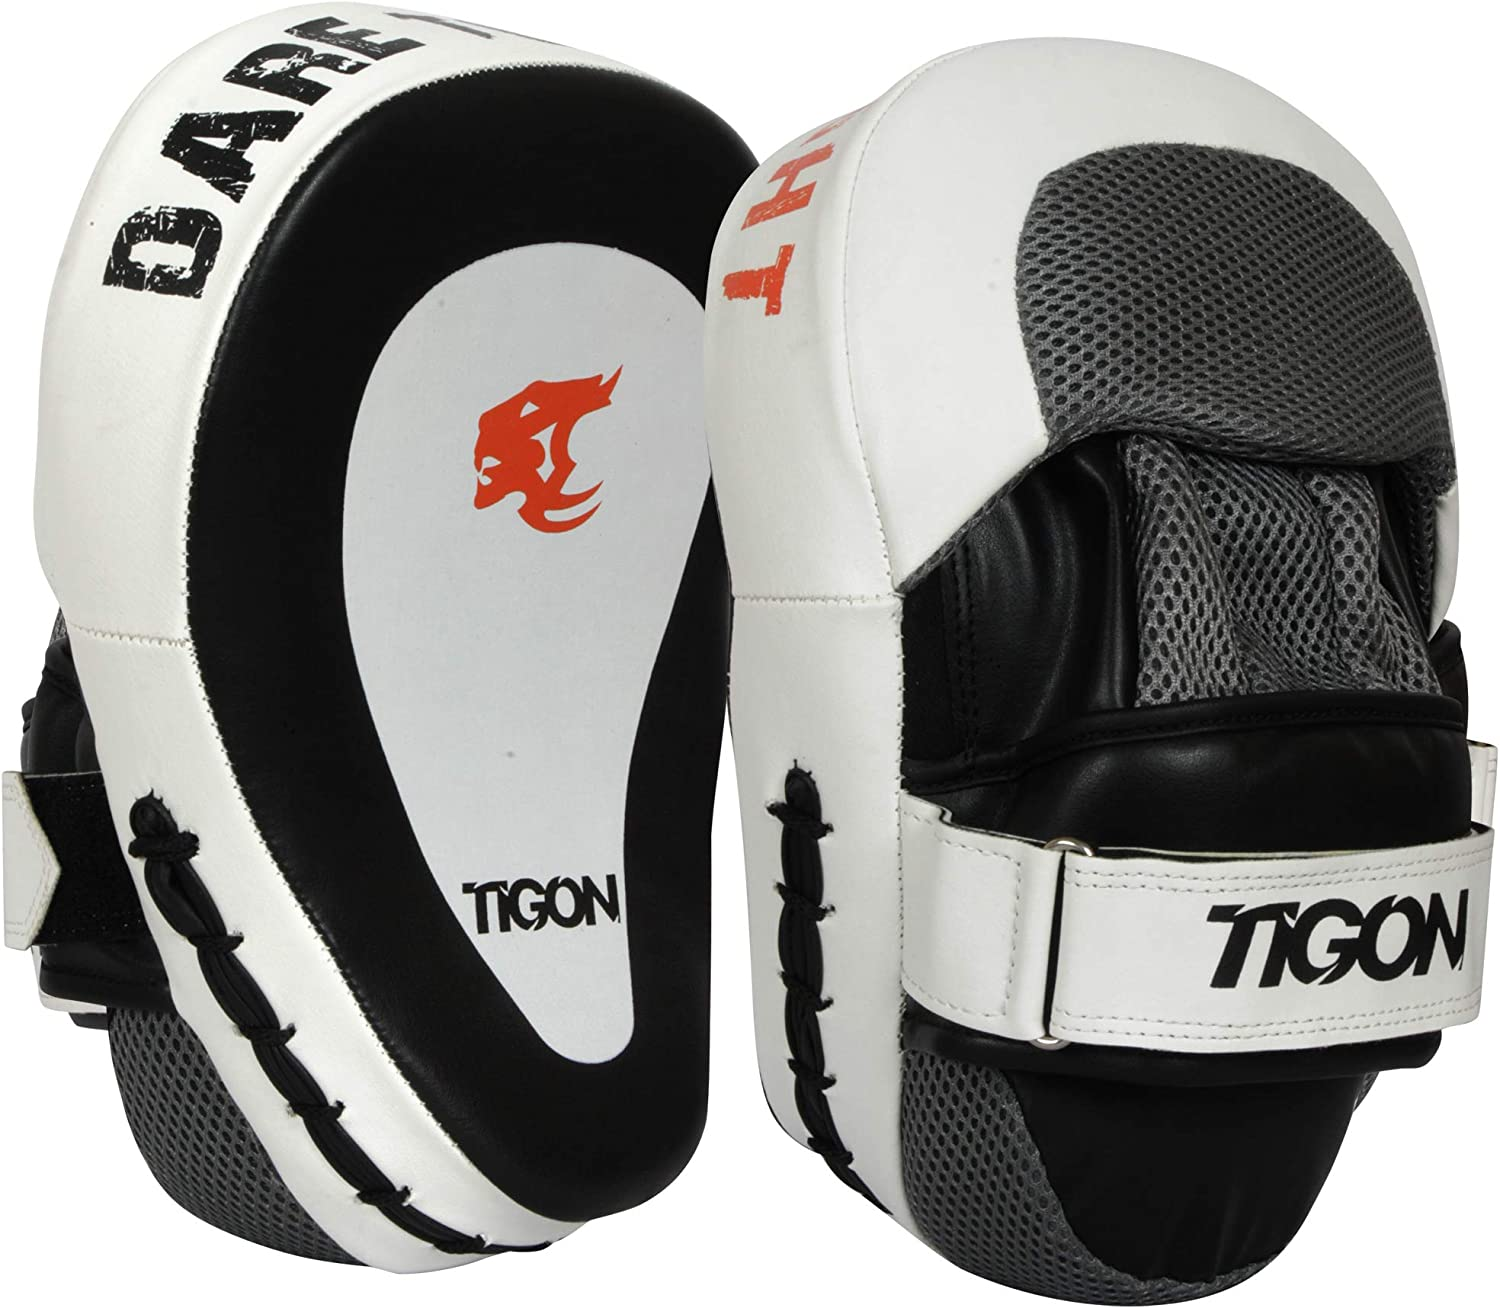 Curved Thai Pads Mitts Hook and Jab Punching Kick Boxing Muay Thai MMA